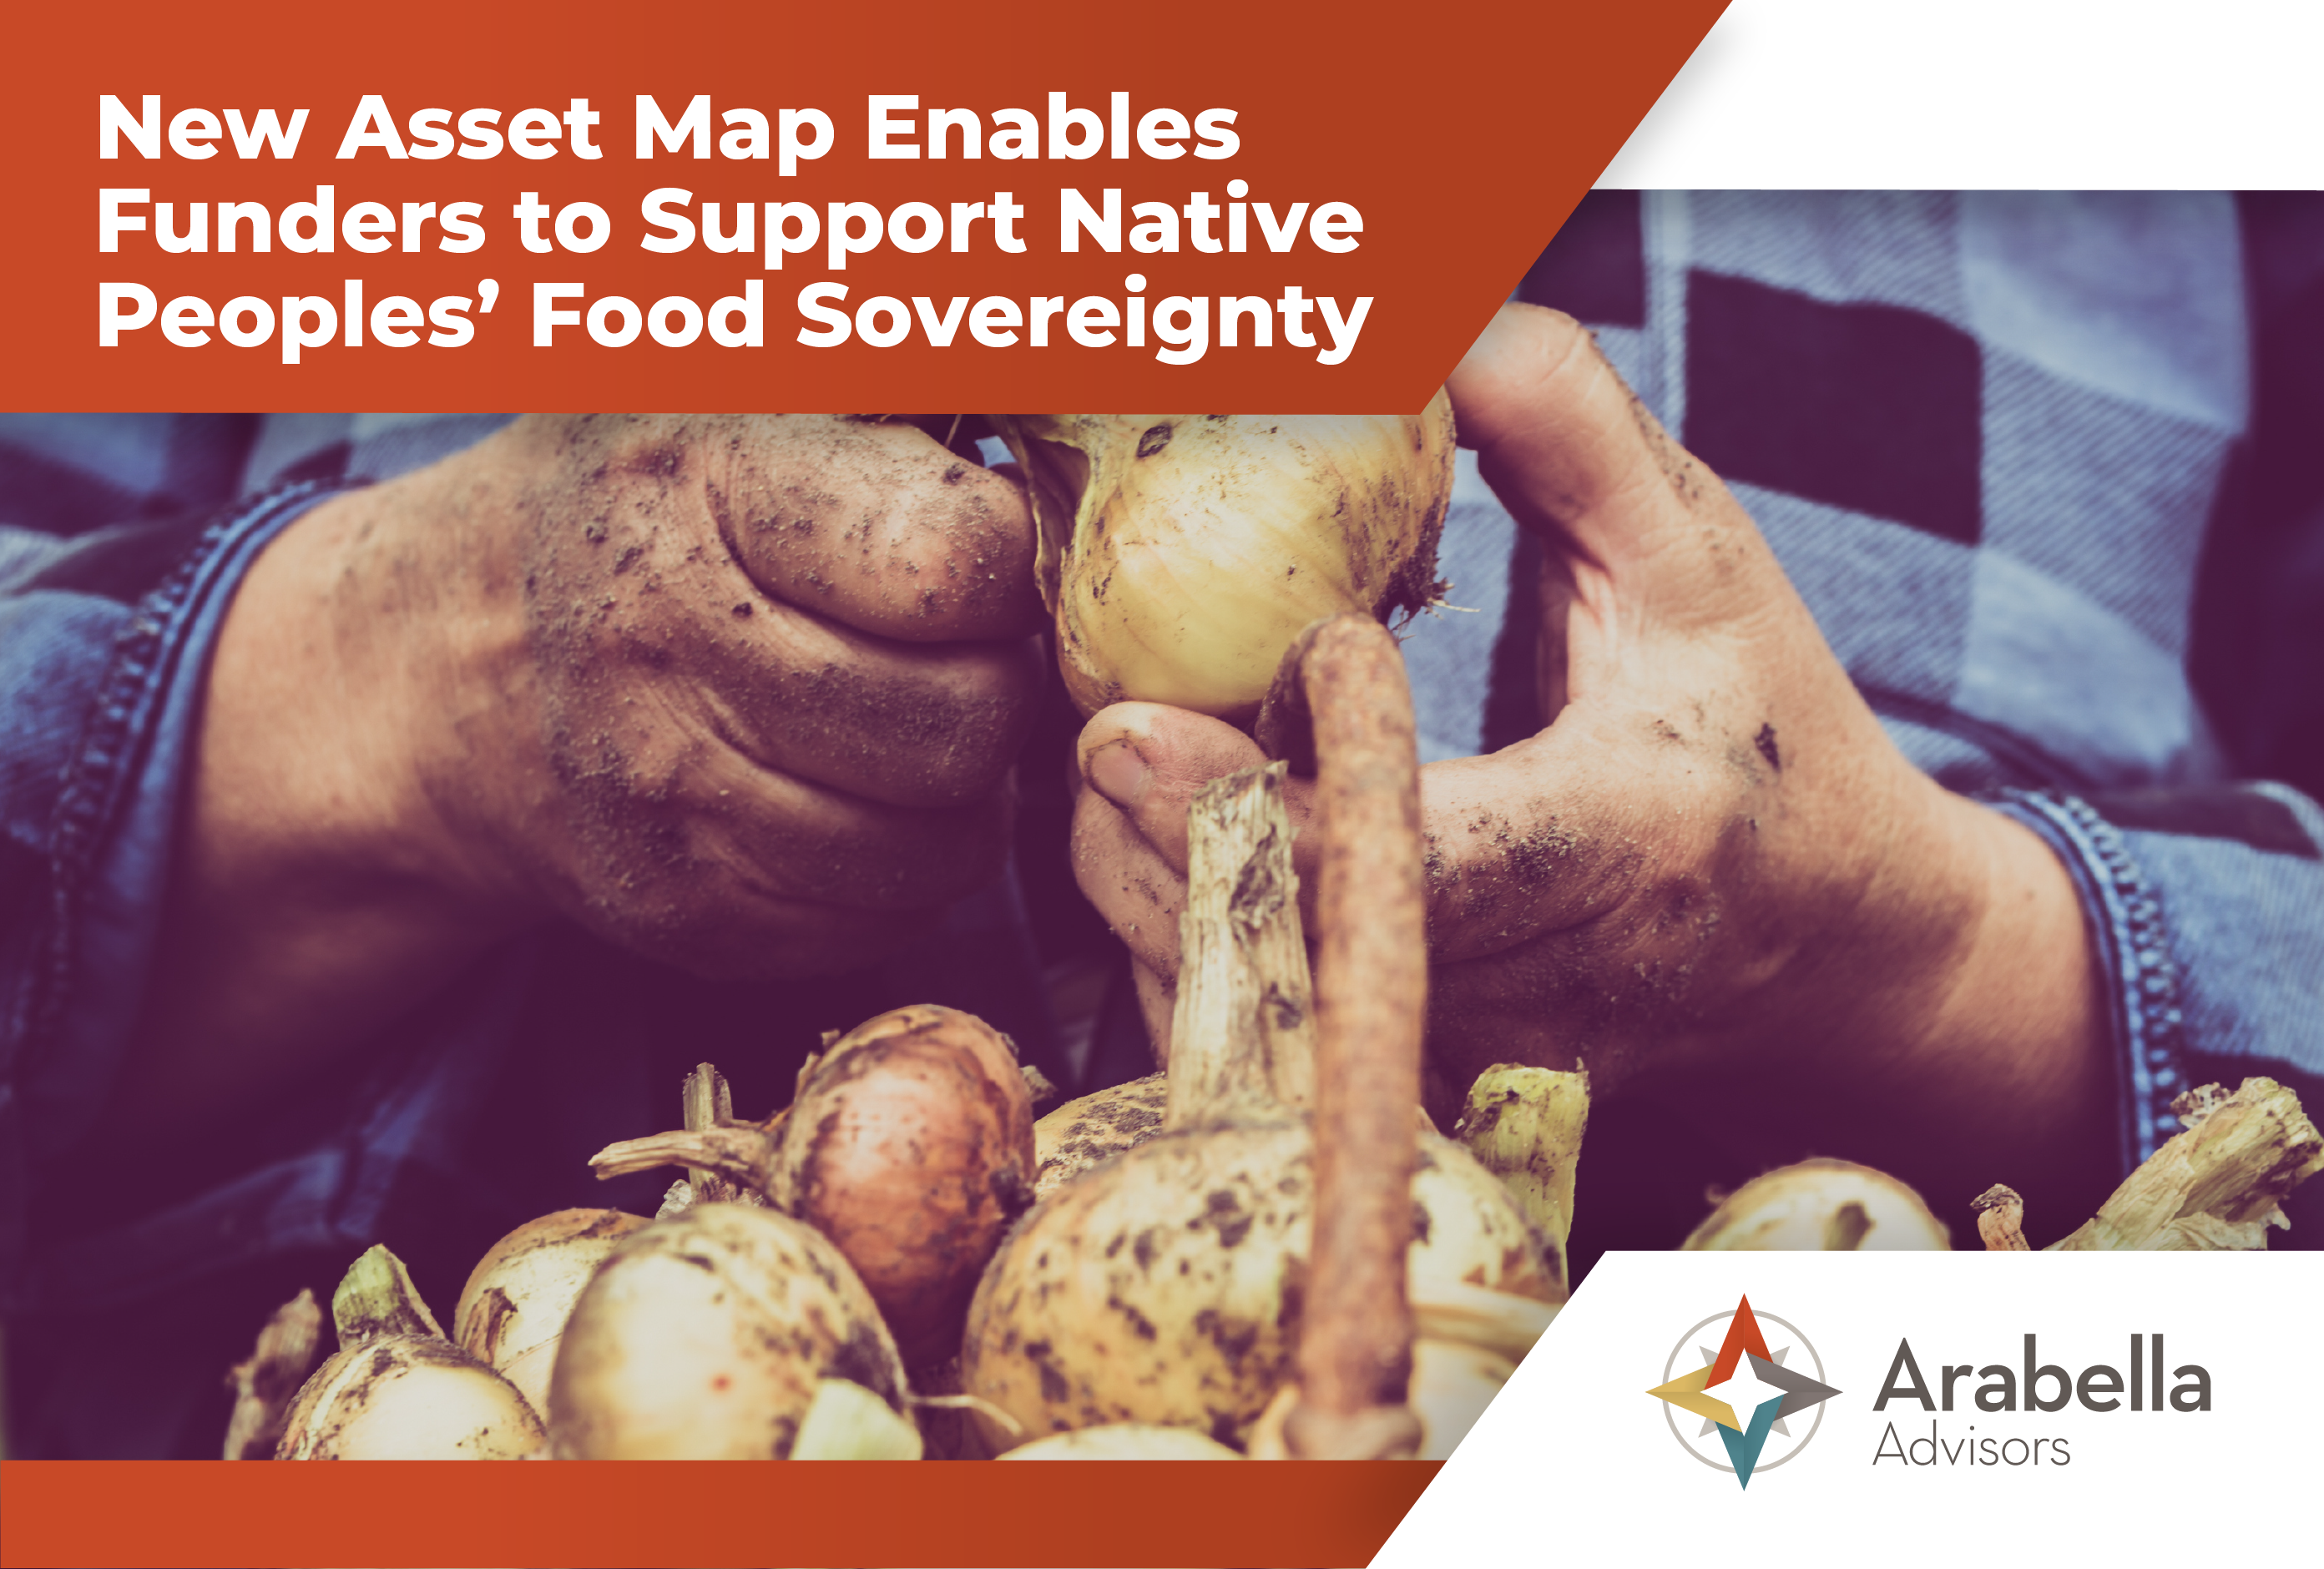 New Asset Map Enables Funders to Support Native Peoples' Food Sovereignty